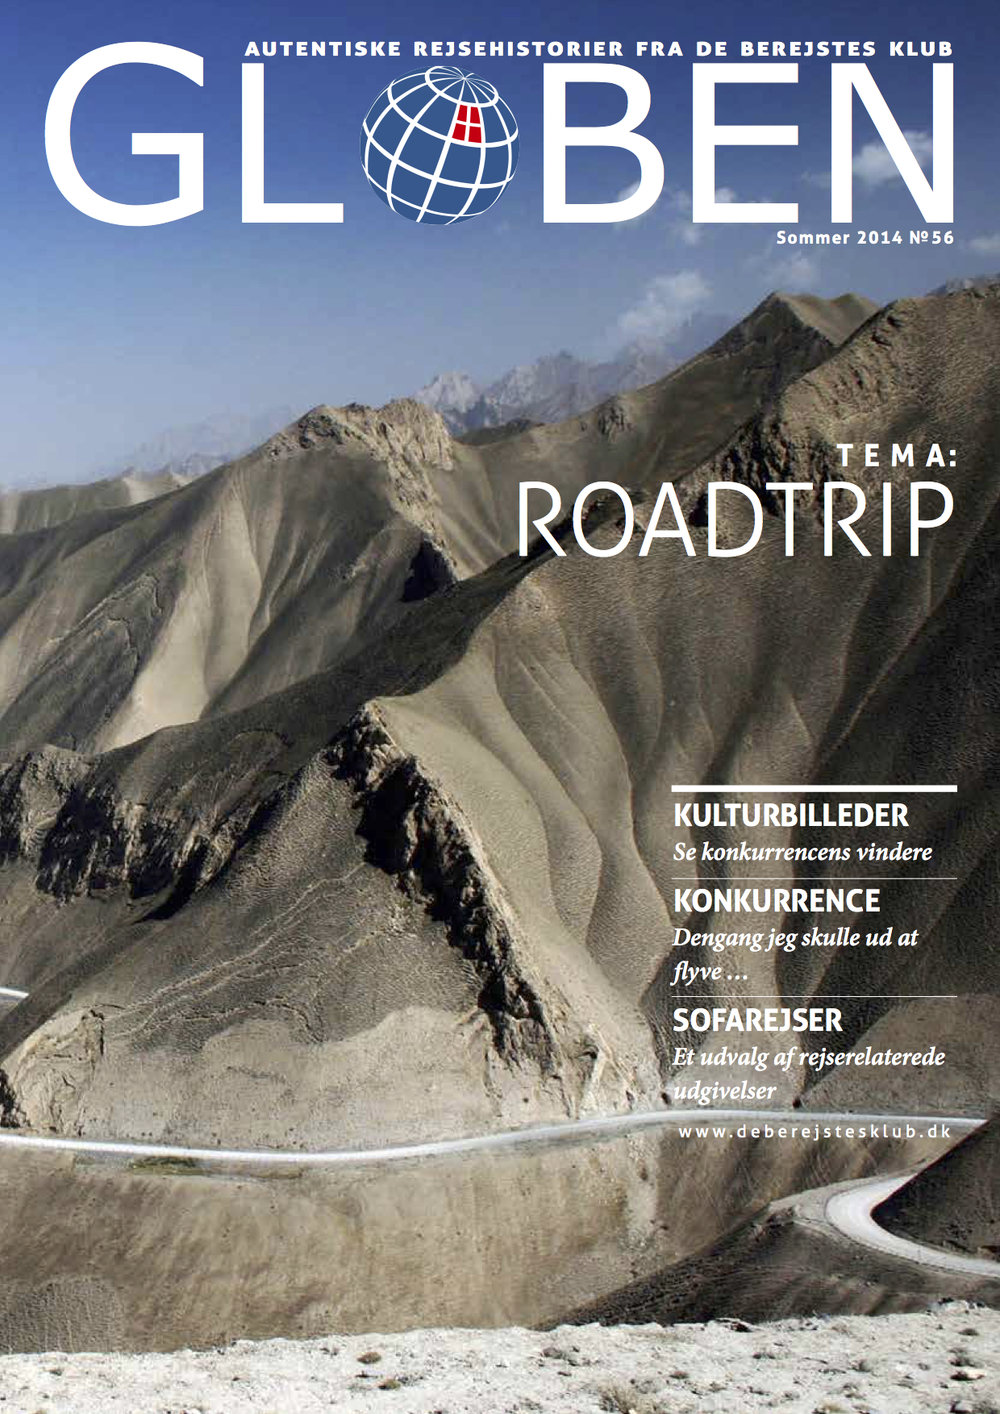 Issue 56: Roadtrip   This issue portrays several stories of the members' road trip journeys across the fjords in Norway, cycling in Peru, camping near the volcano in Turkmenistan, adventures in Iran, Rwanda, and others. Read  here .